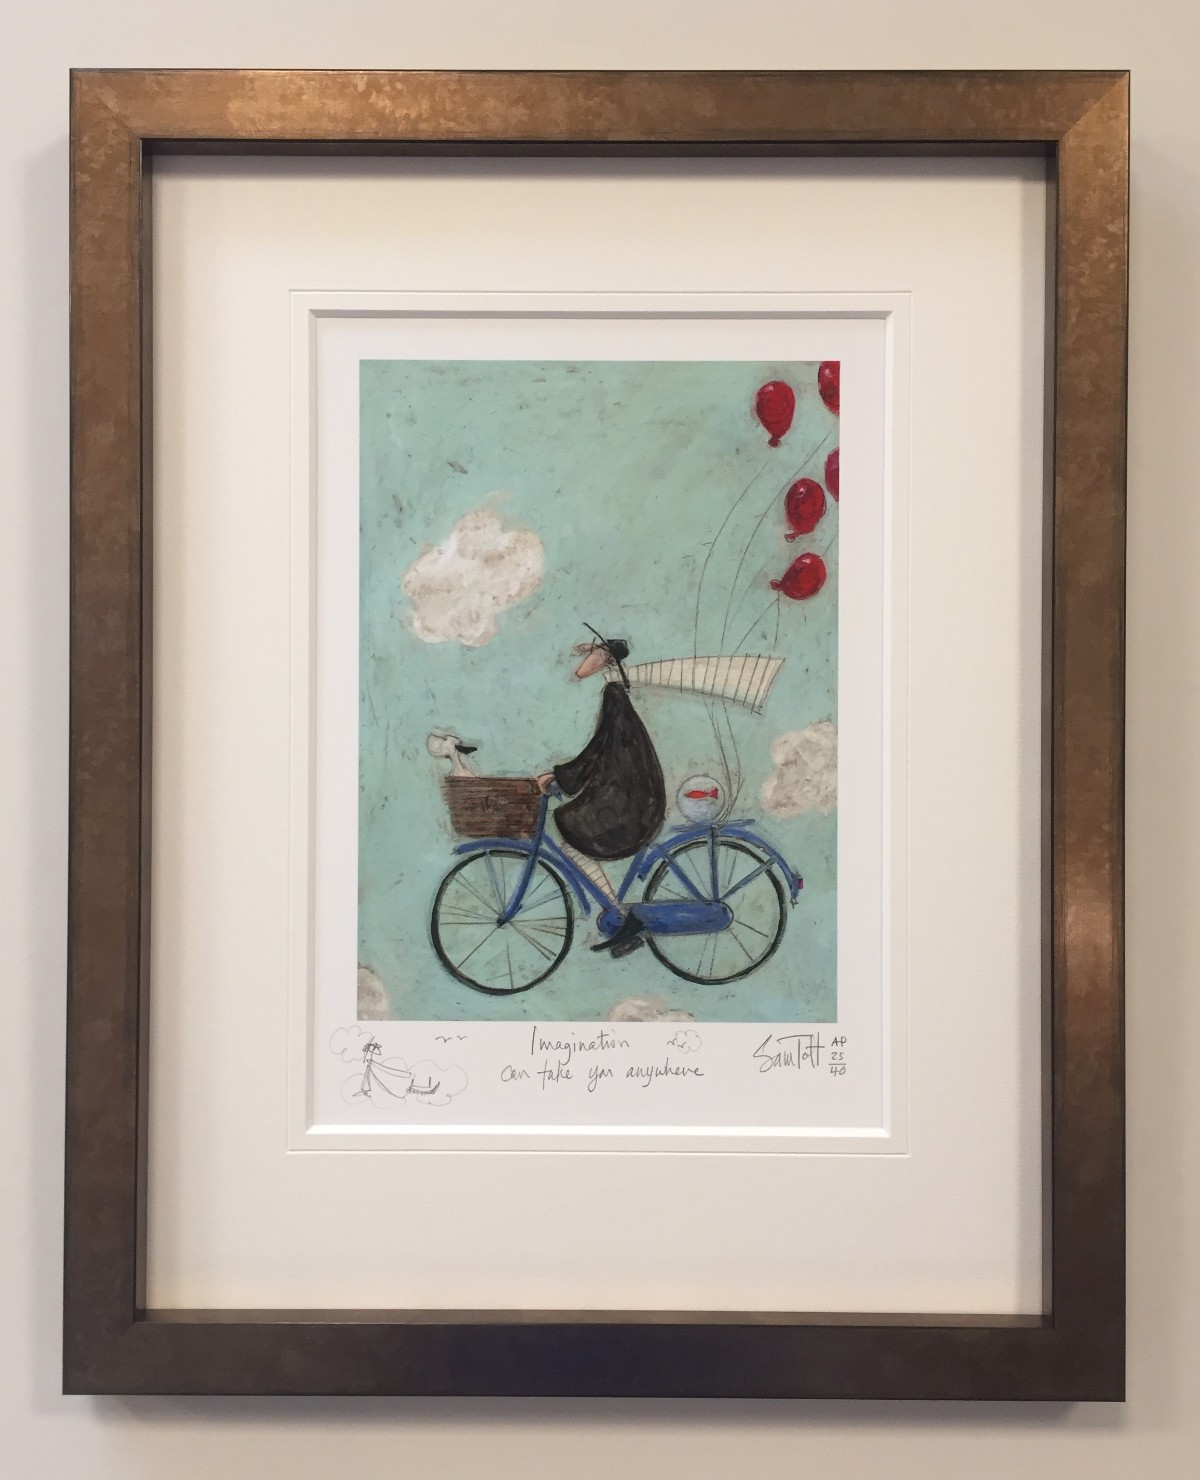 Imagination can take you Anywhere (AP Remarque) by Sam Toft